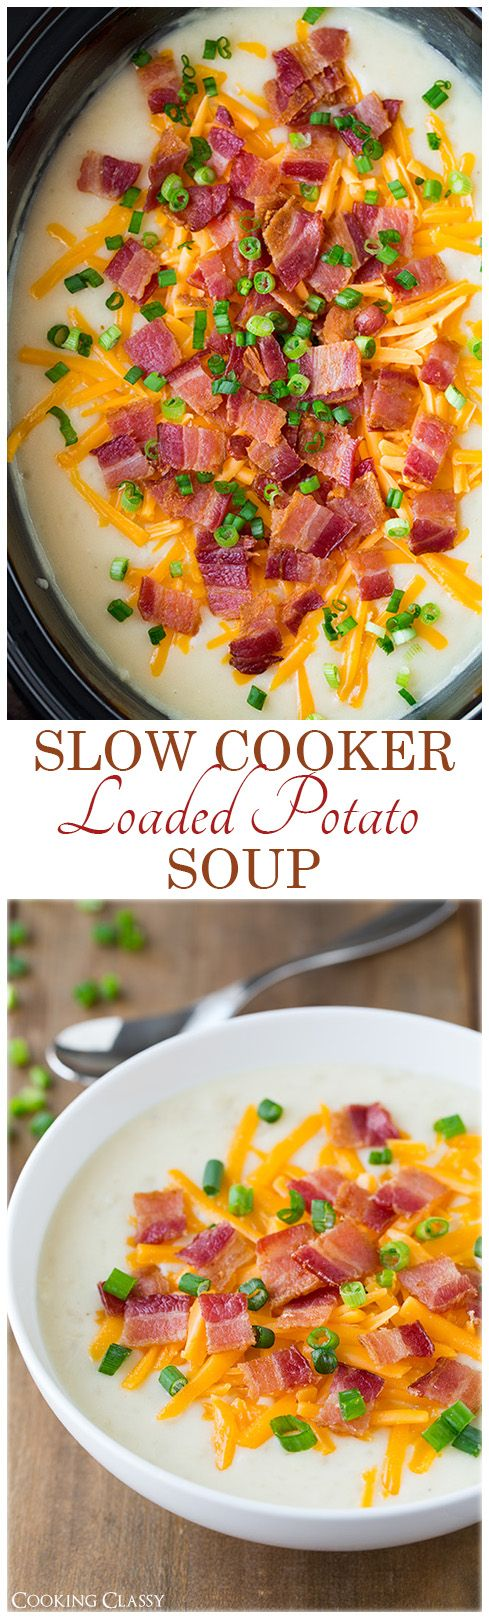 Slow Cooker Loaded Potato Soup - Easy to make and tastes amazing!!